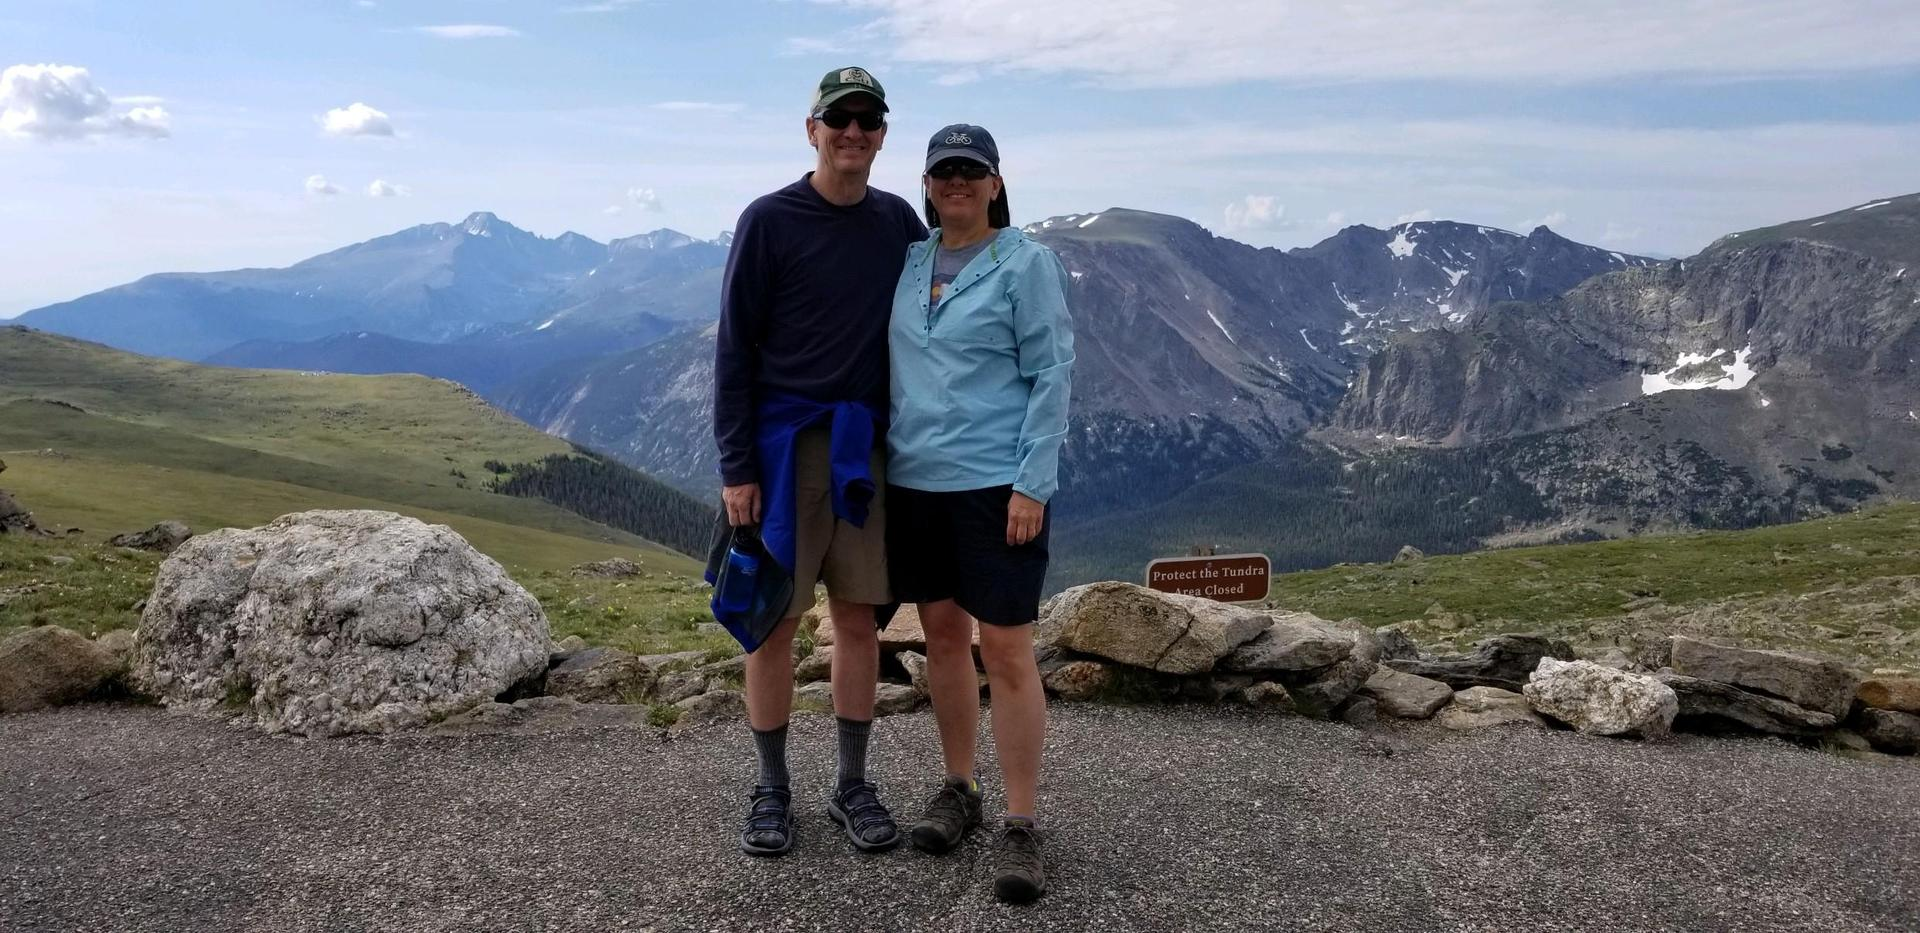 Mr. and Mrs. Jackson in Rocky Mountain National Park